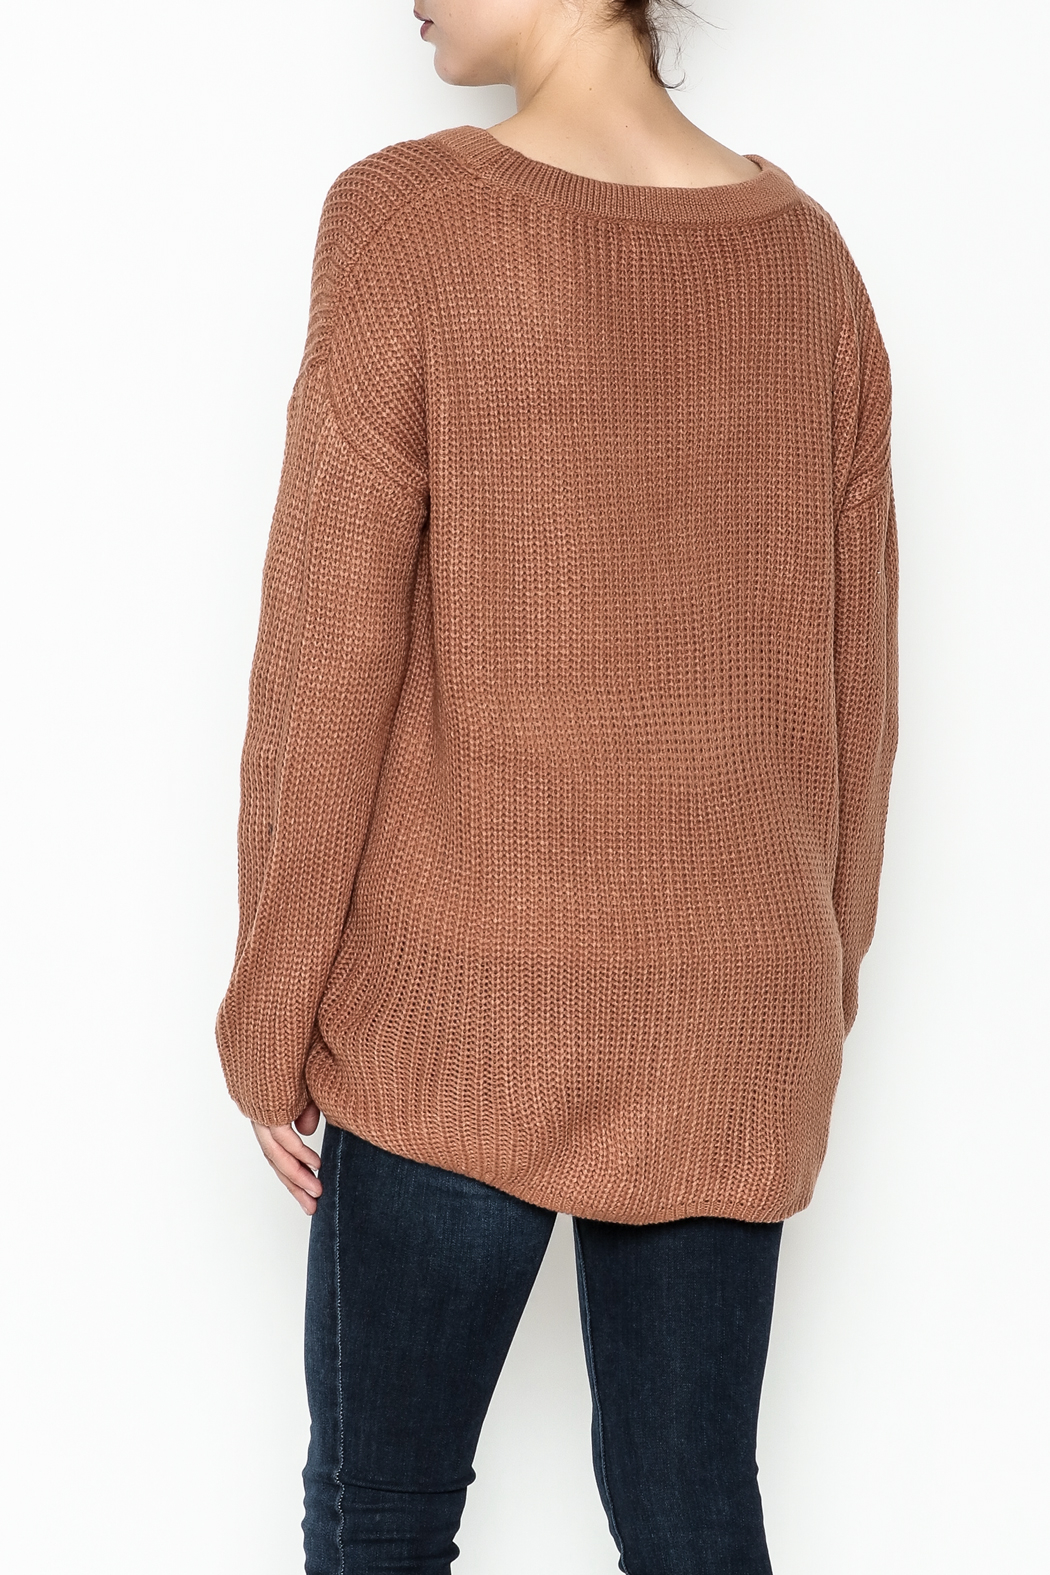 Entro Lace Me Up Sweater - Back Cropped Image